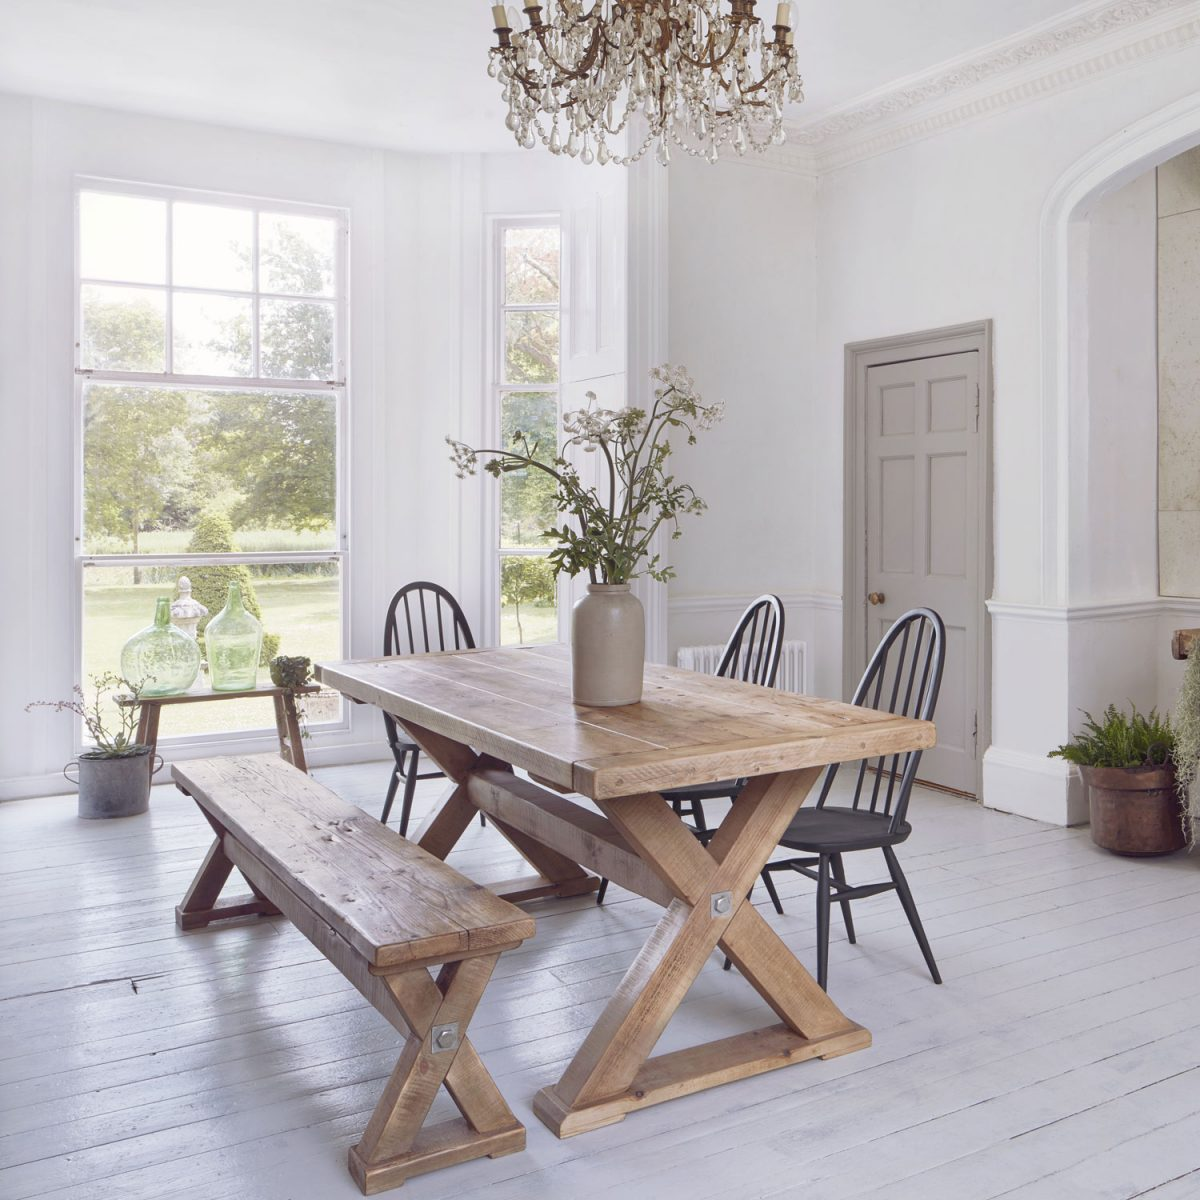 Reclaimed Wood Plank Trestle Dining Table